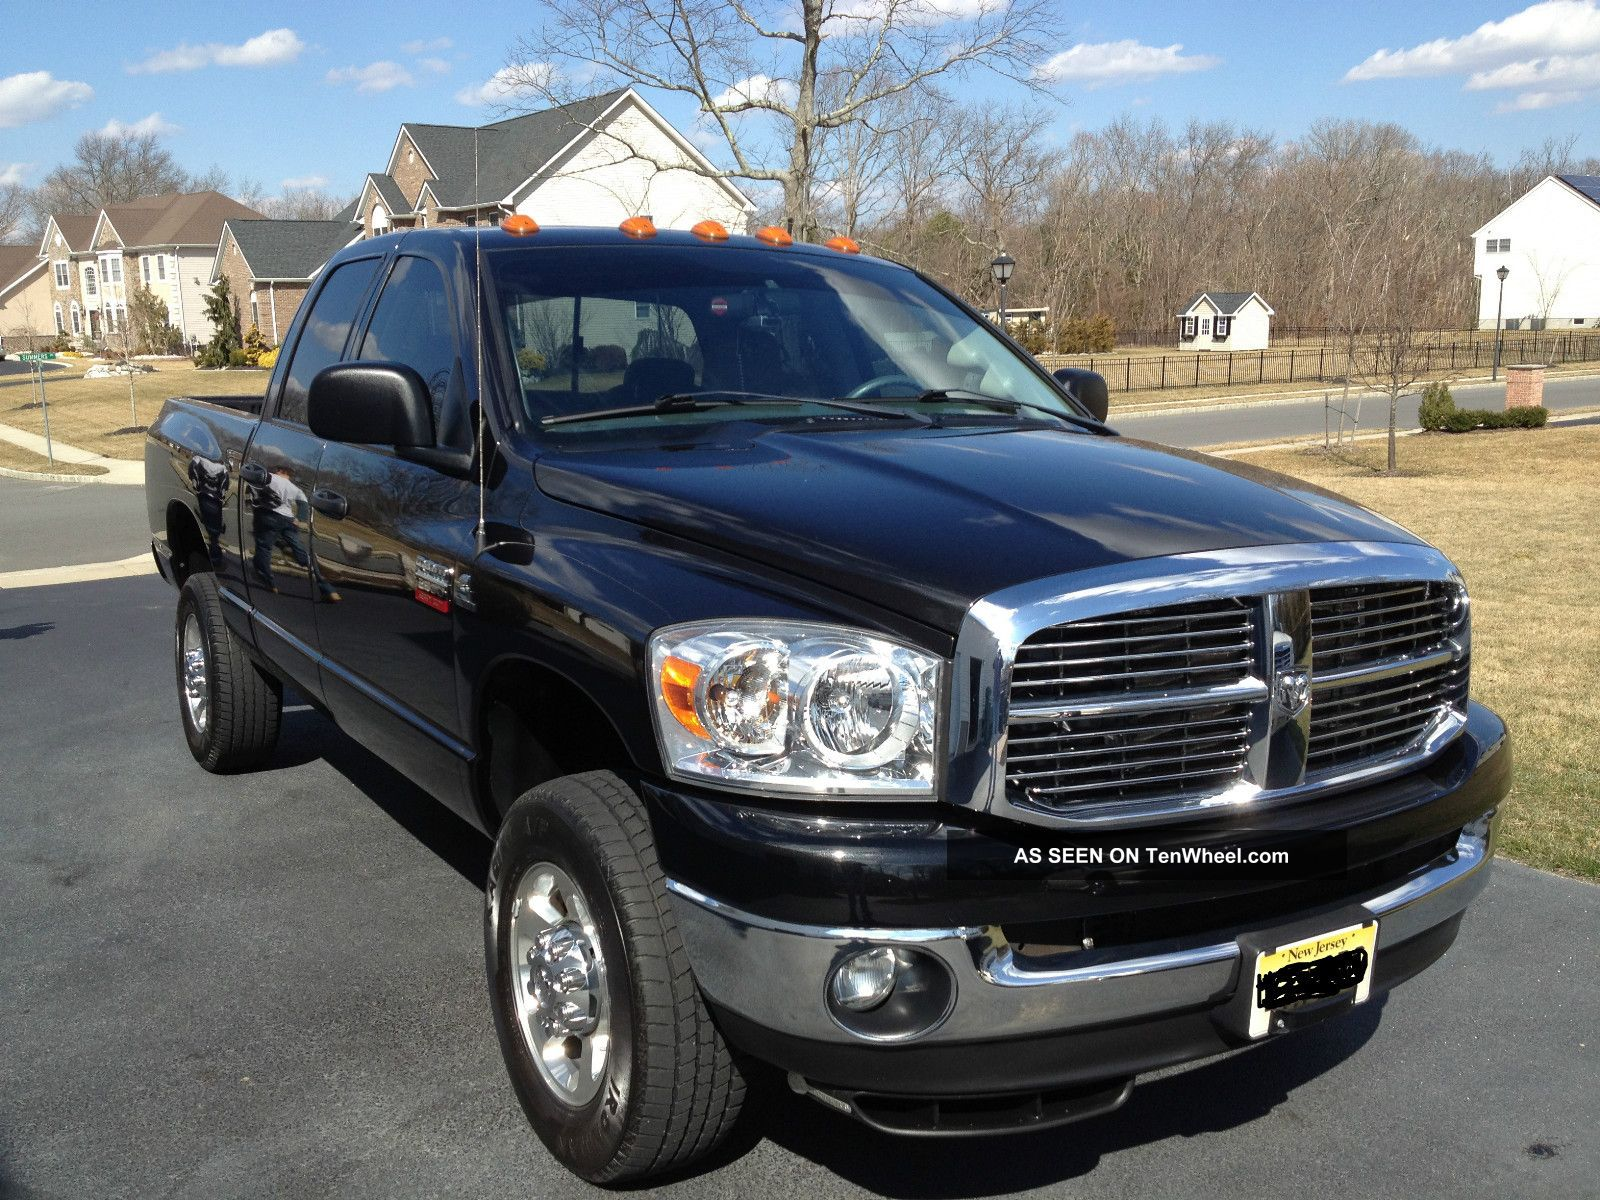 2008 dodge ram 2500 slt crew cab pickup 4 door 6 7l cummins turbo diesel. Black Bedroom Furniture Sets. Home Design Ideas